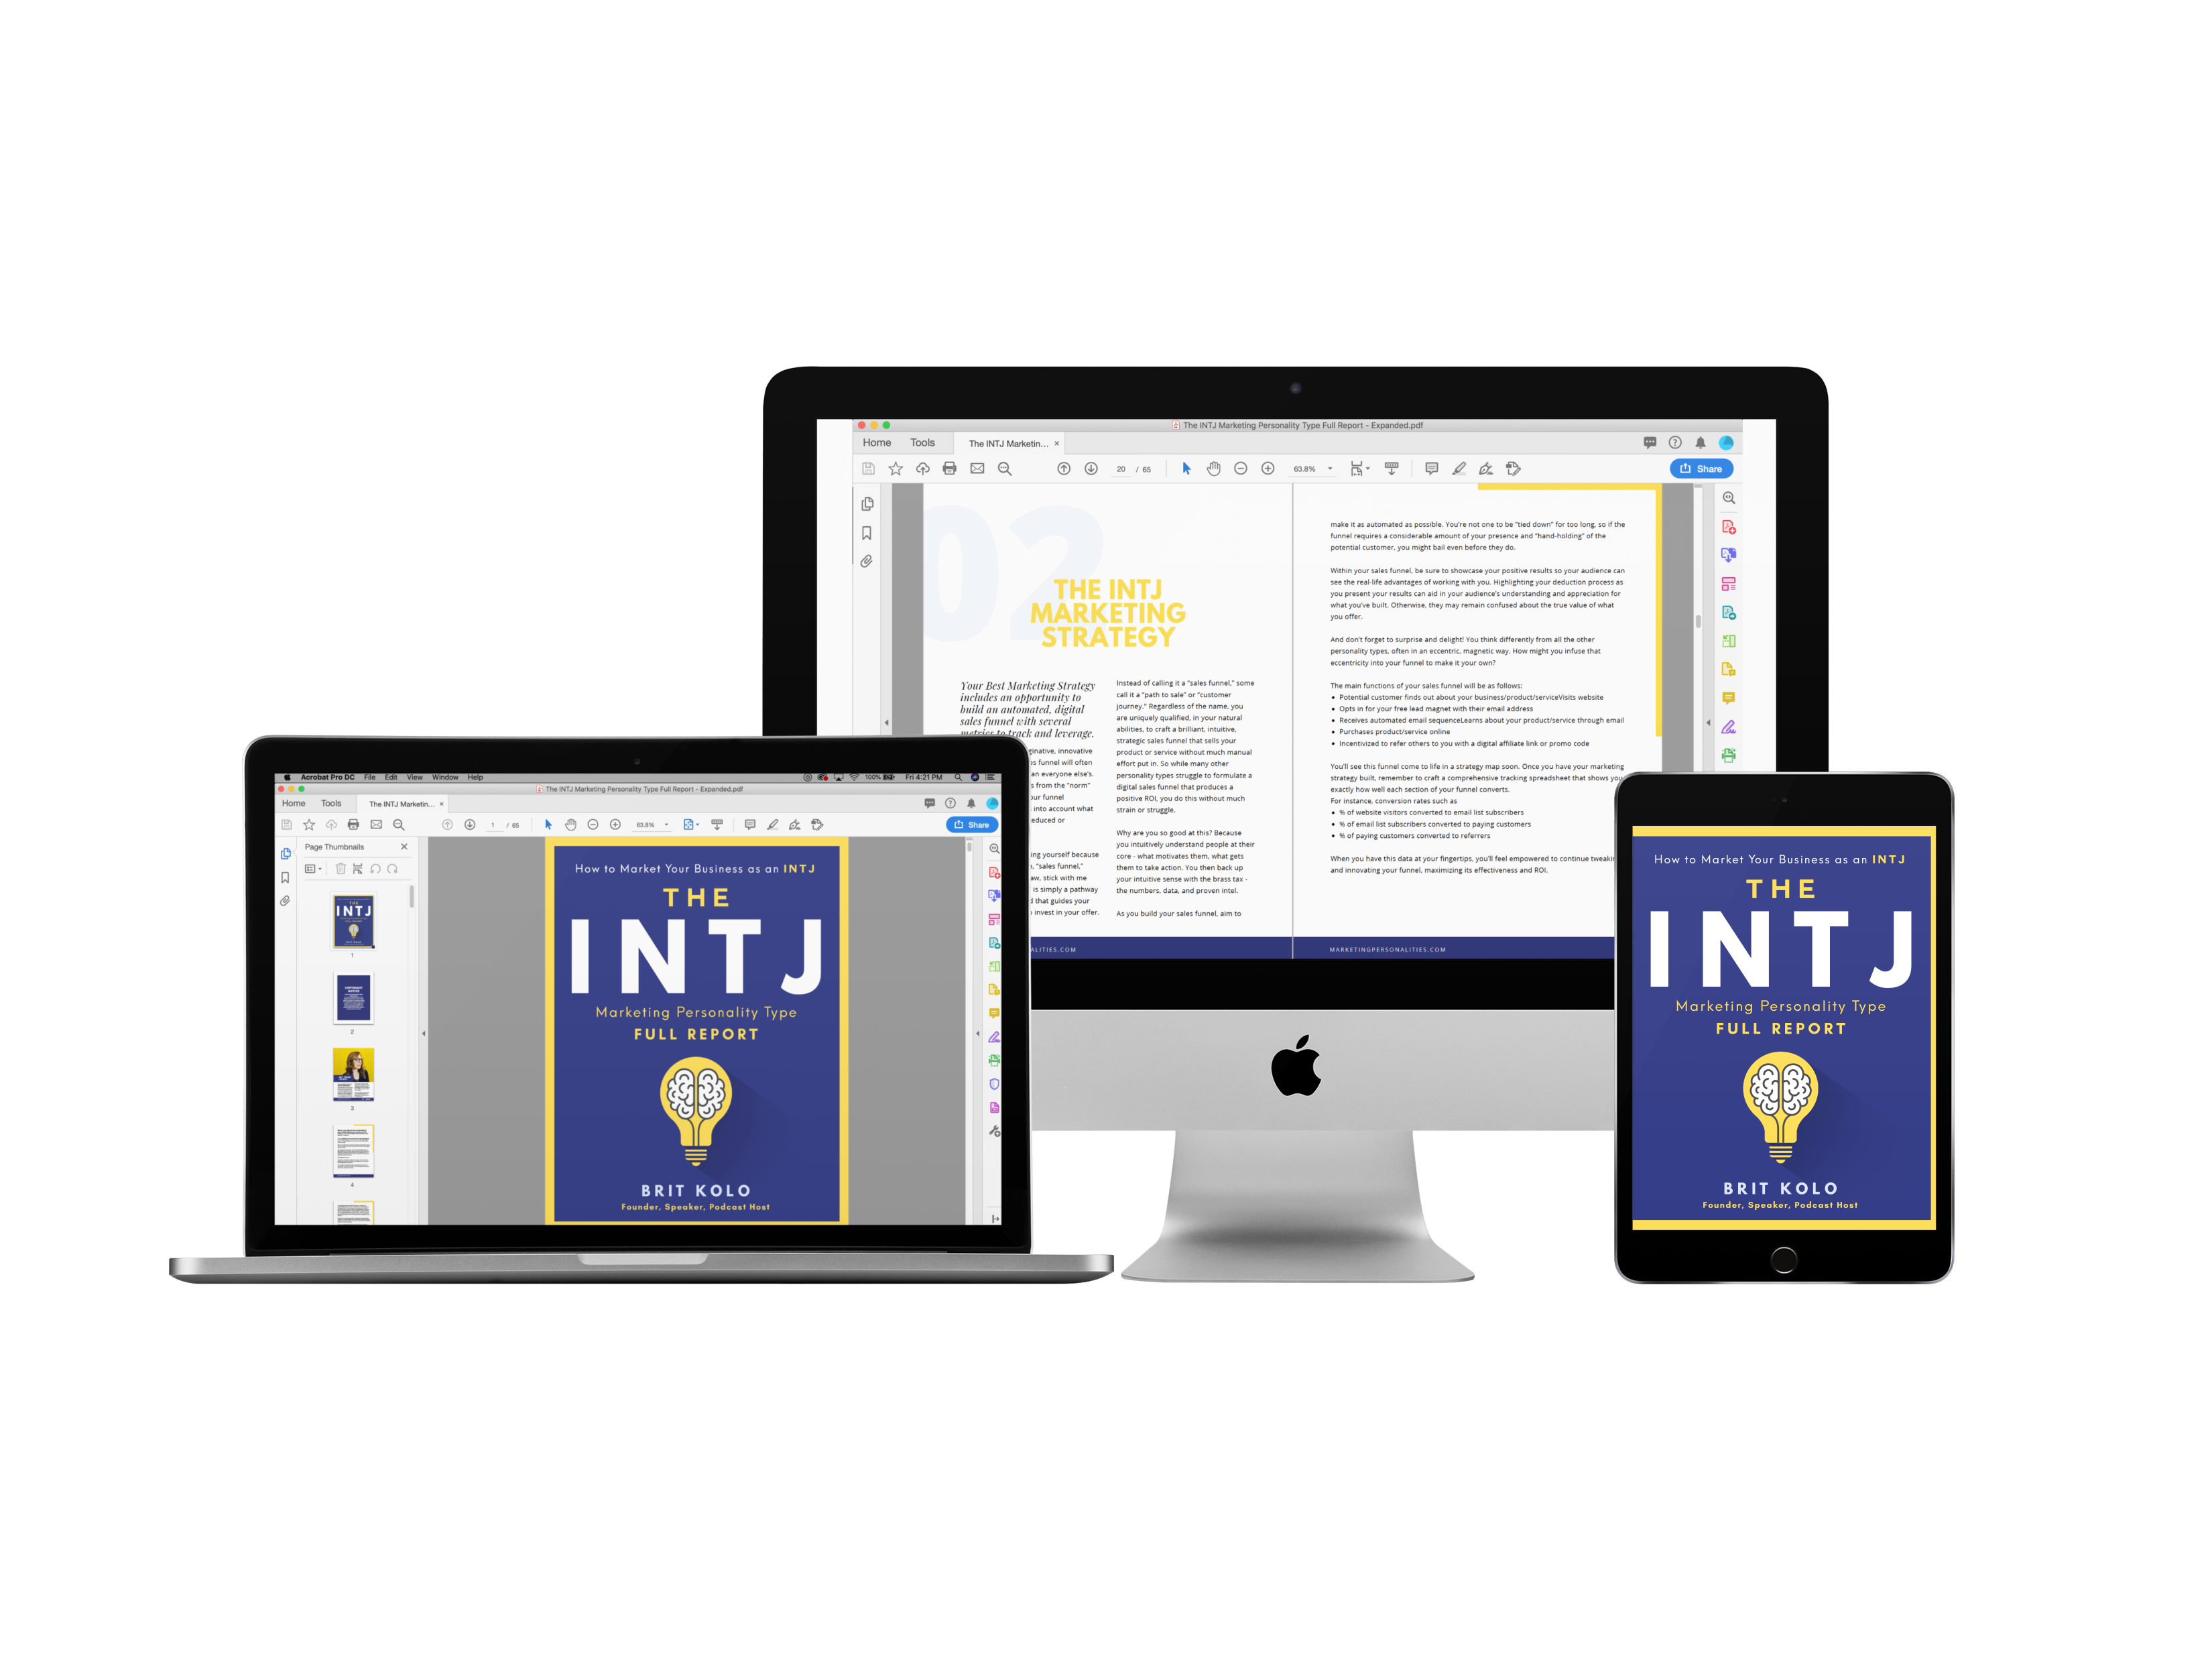 INTJ Marketing Personality Type Full Report Product